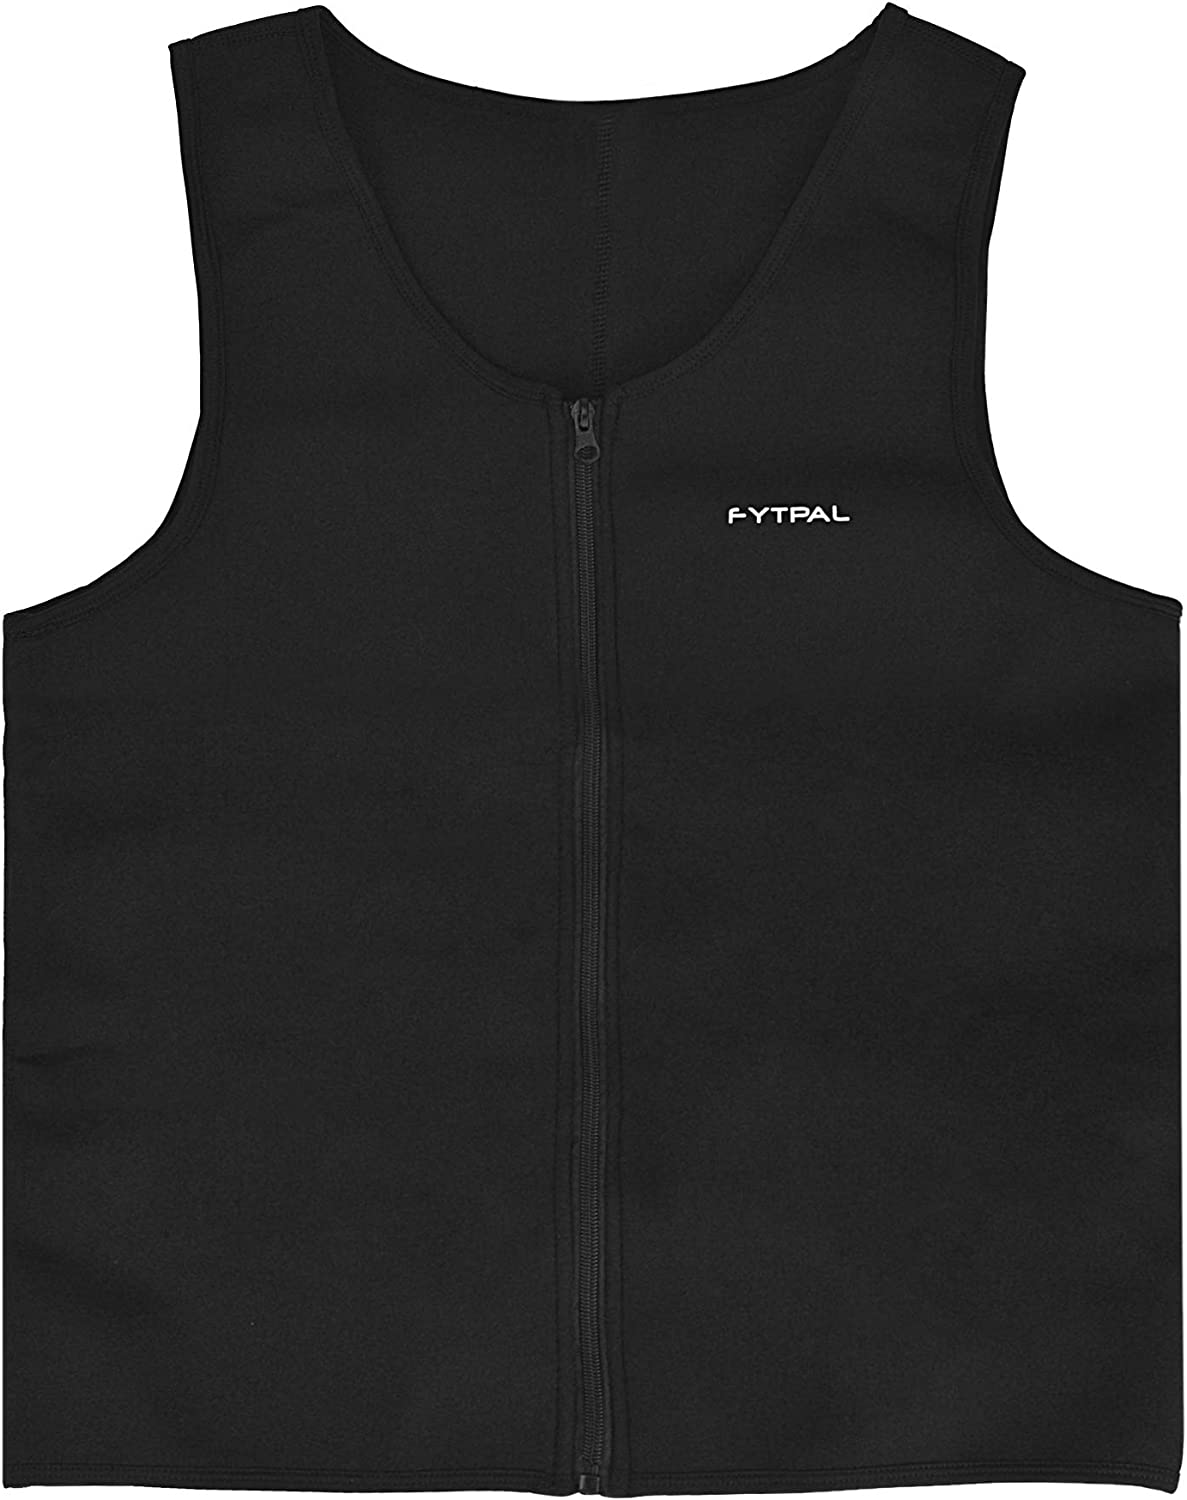 FYTPAL Men's Waist Trainer Sweat Vest | Waist Trainer Fitness Tank Top for Weight Loss | Zipper Neoprene Workout Body Shaper | Sauna Corset Vest for Gym, Sports, Home & All Day Long Size Large Black